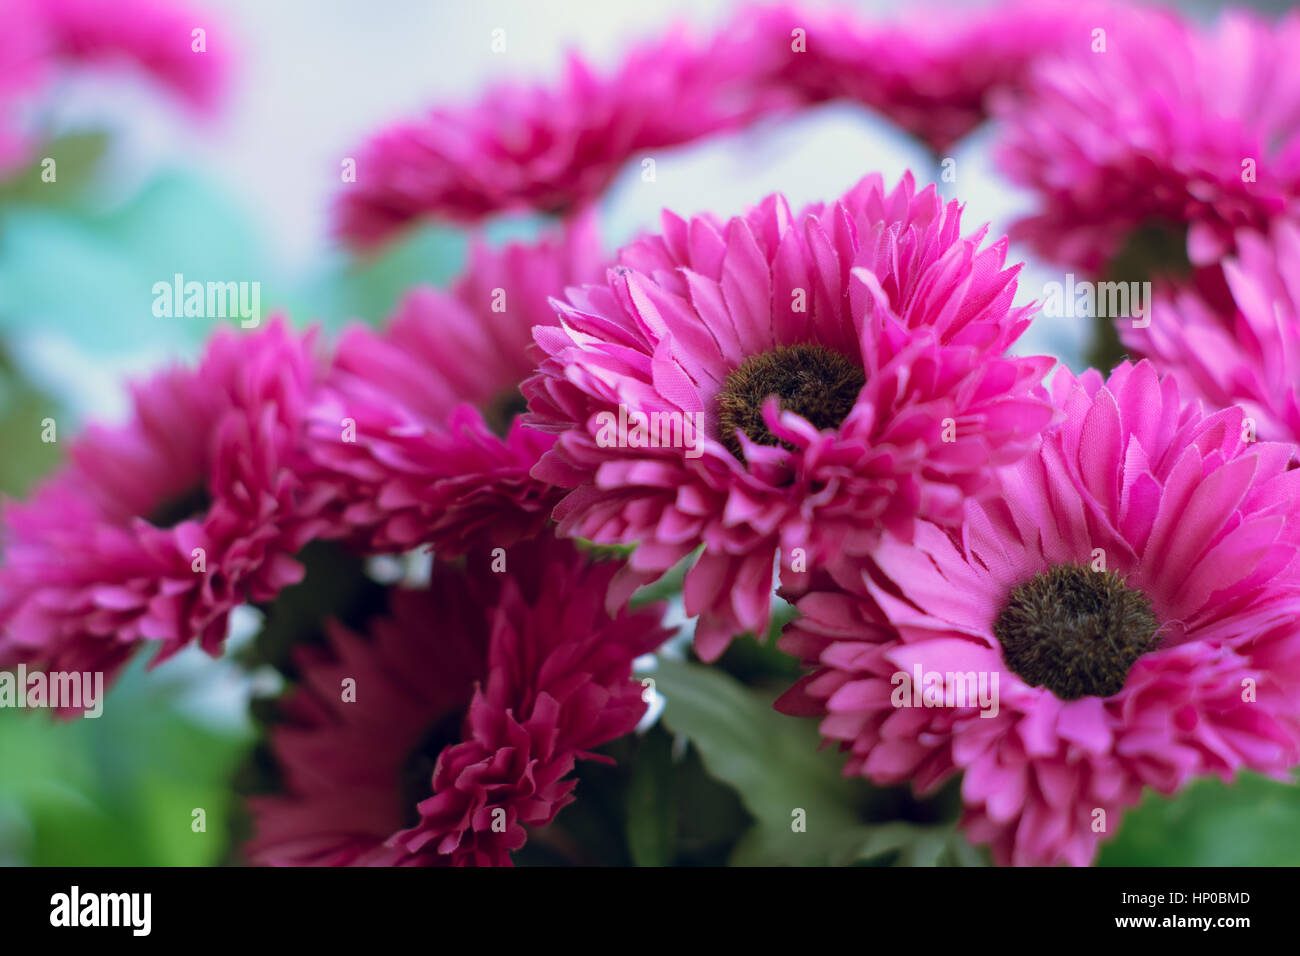 Background Of Pink Artificial Daisy Flowers Stock Photo 134004205